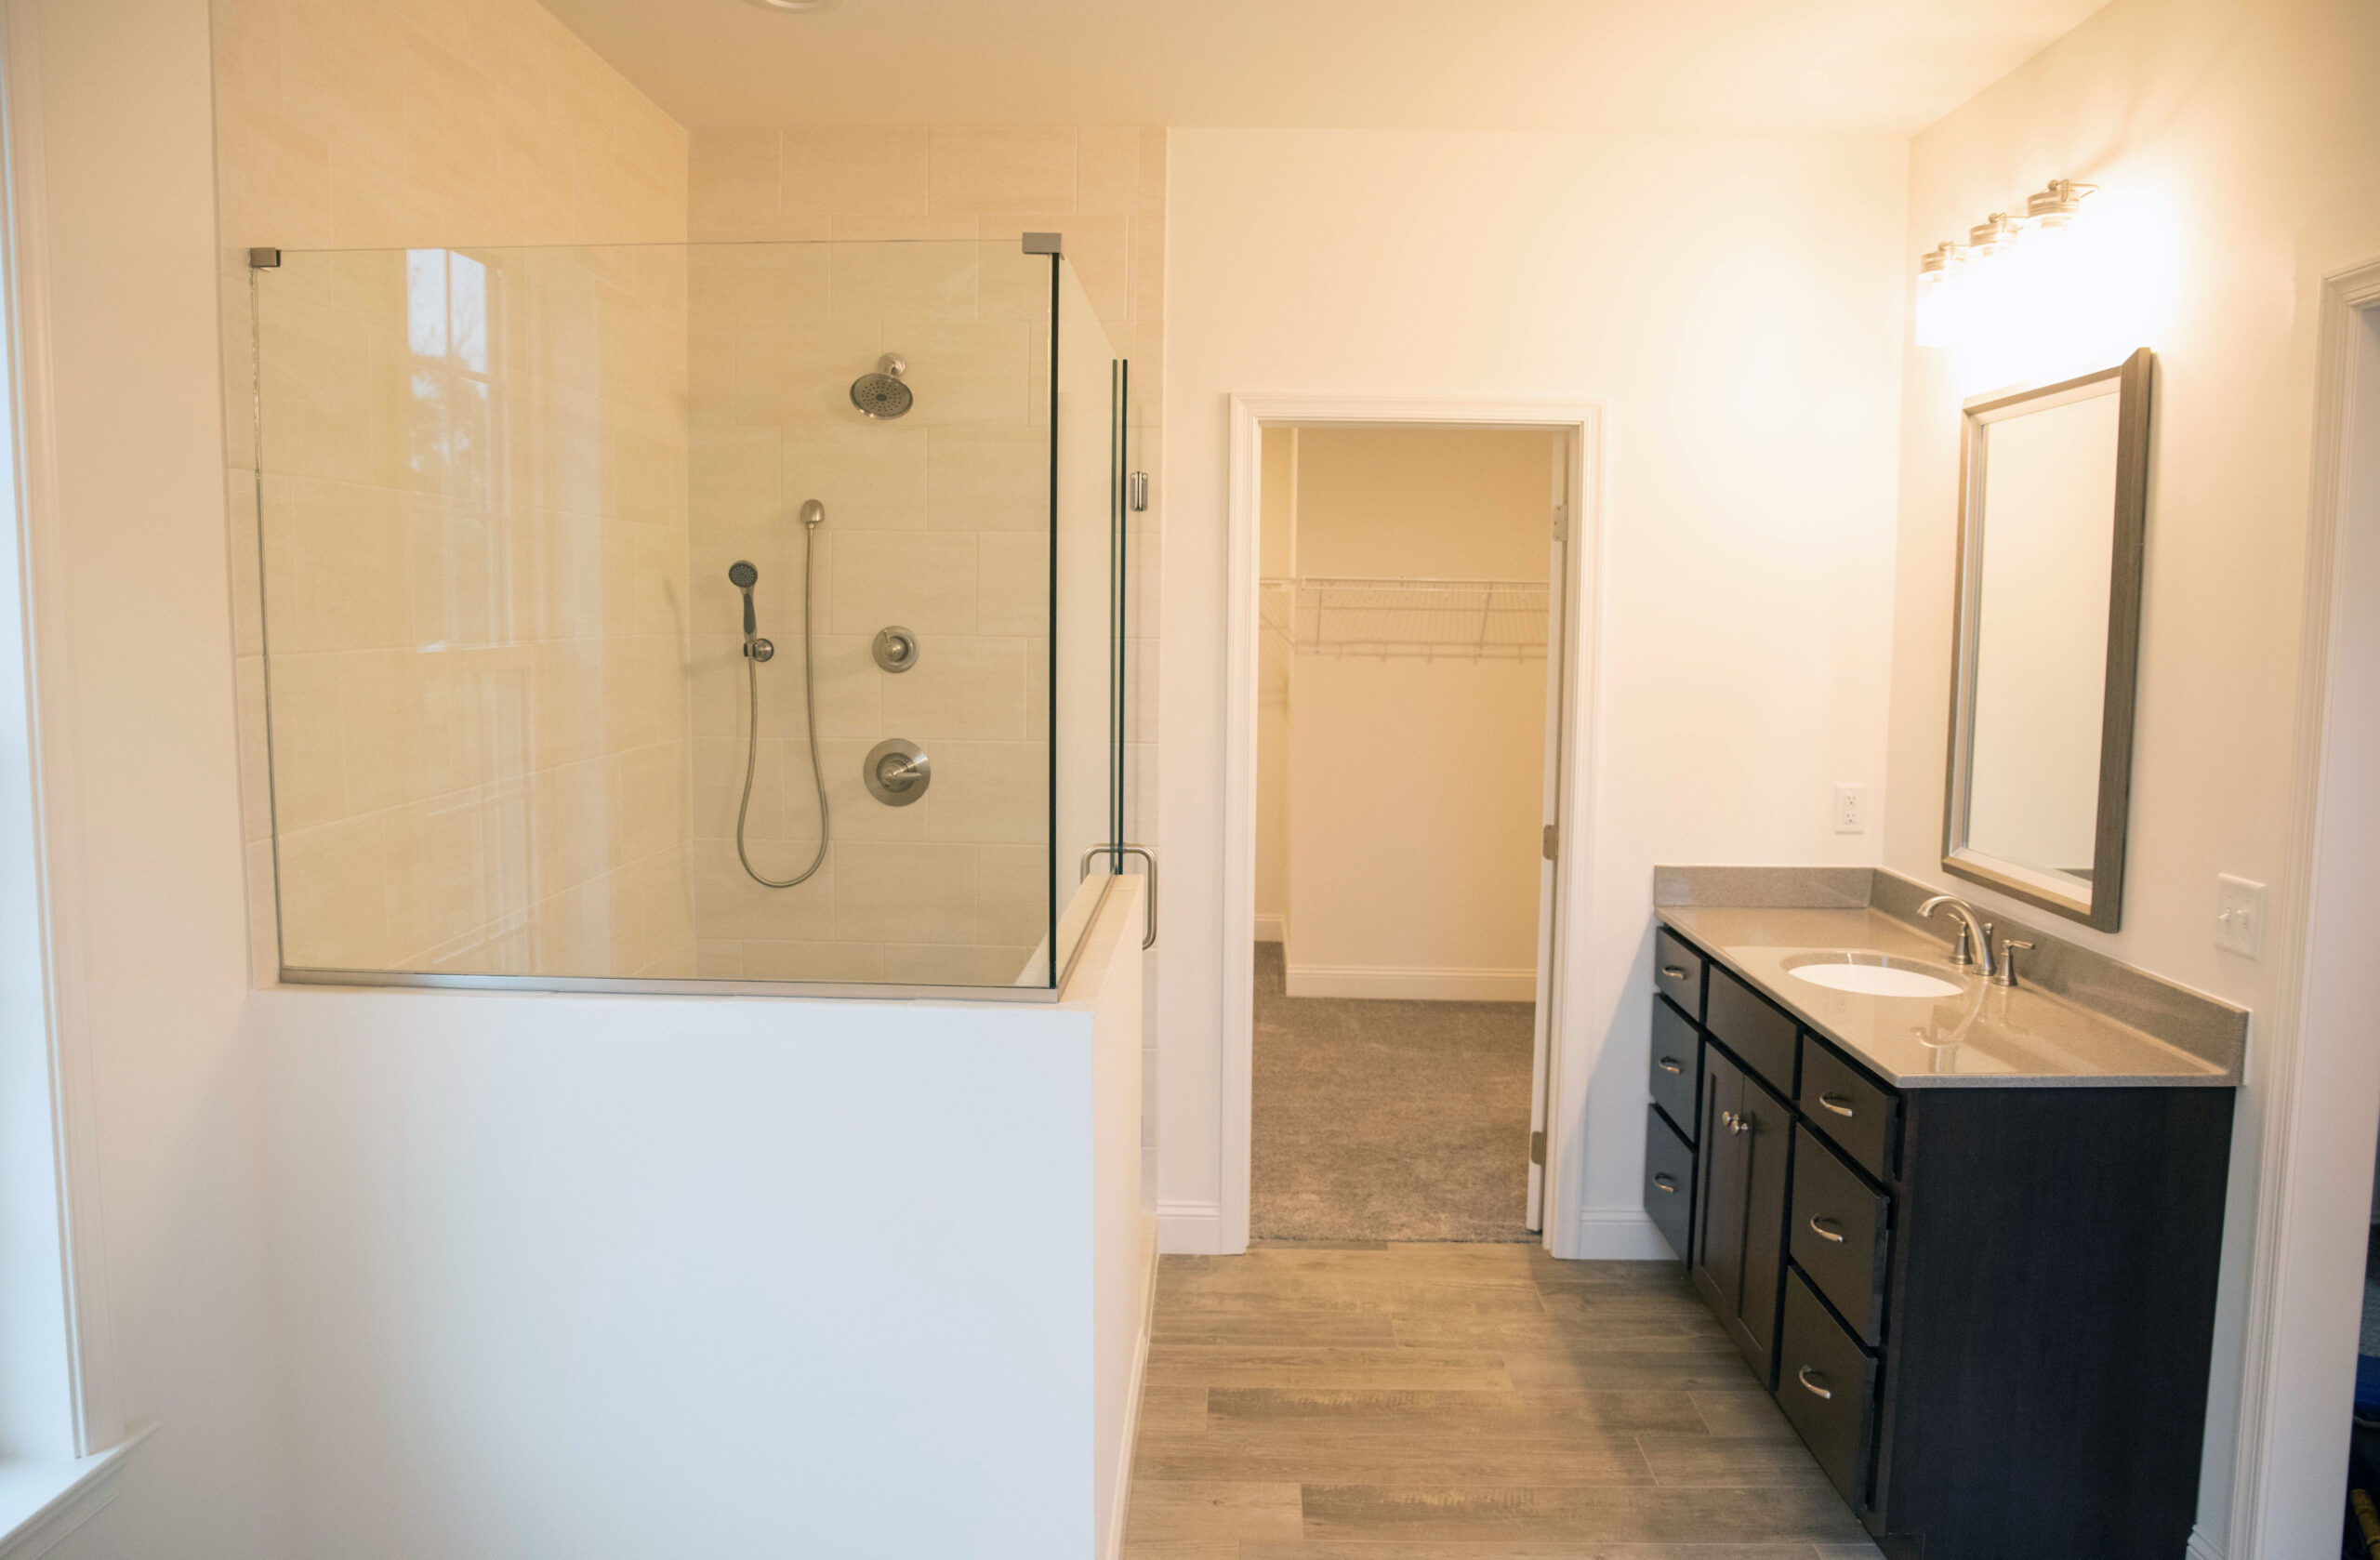 The Master Bathroom has a shower with tiled walls and floor, clear glass swinging shower doors and panels with a vanity and tiled floors.